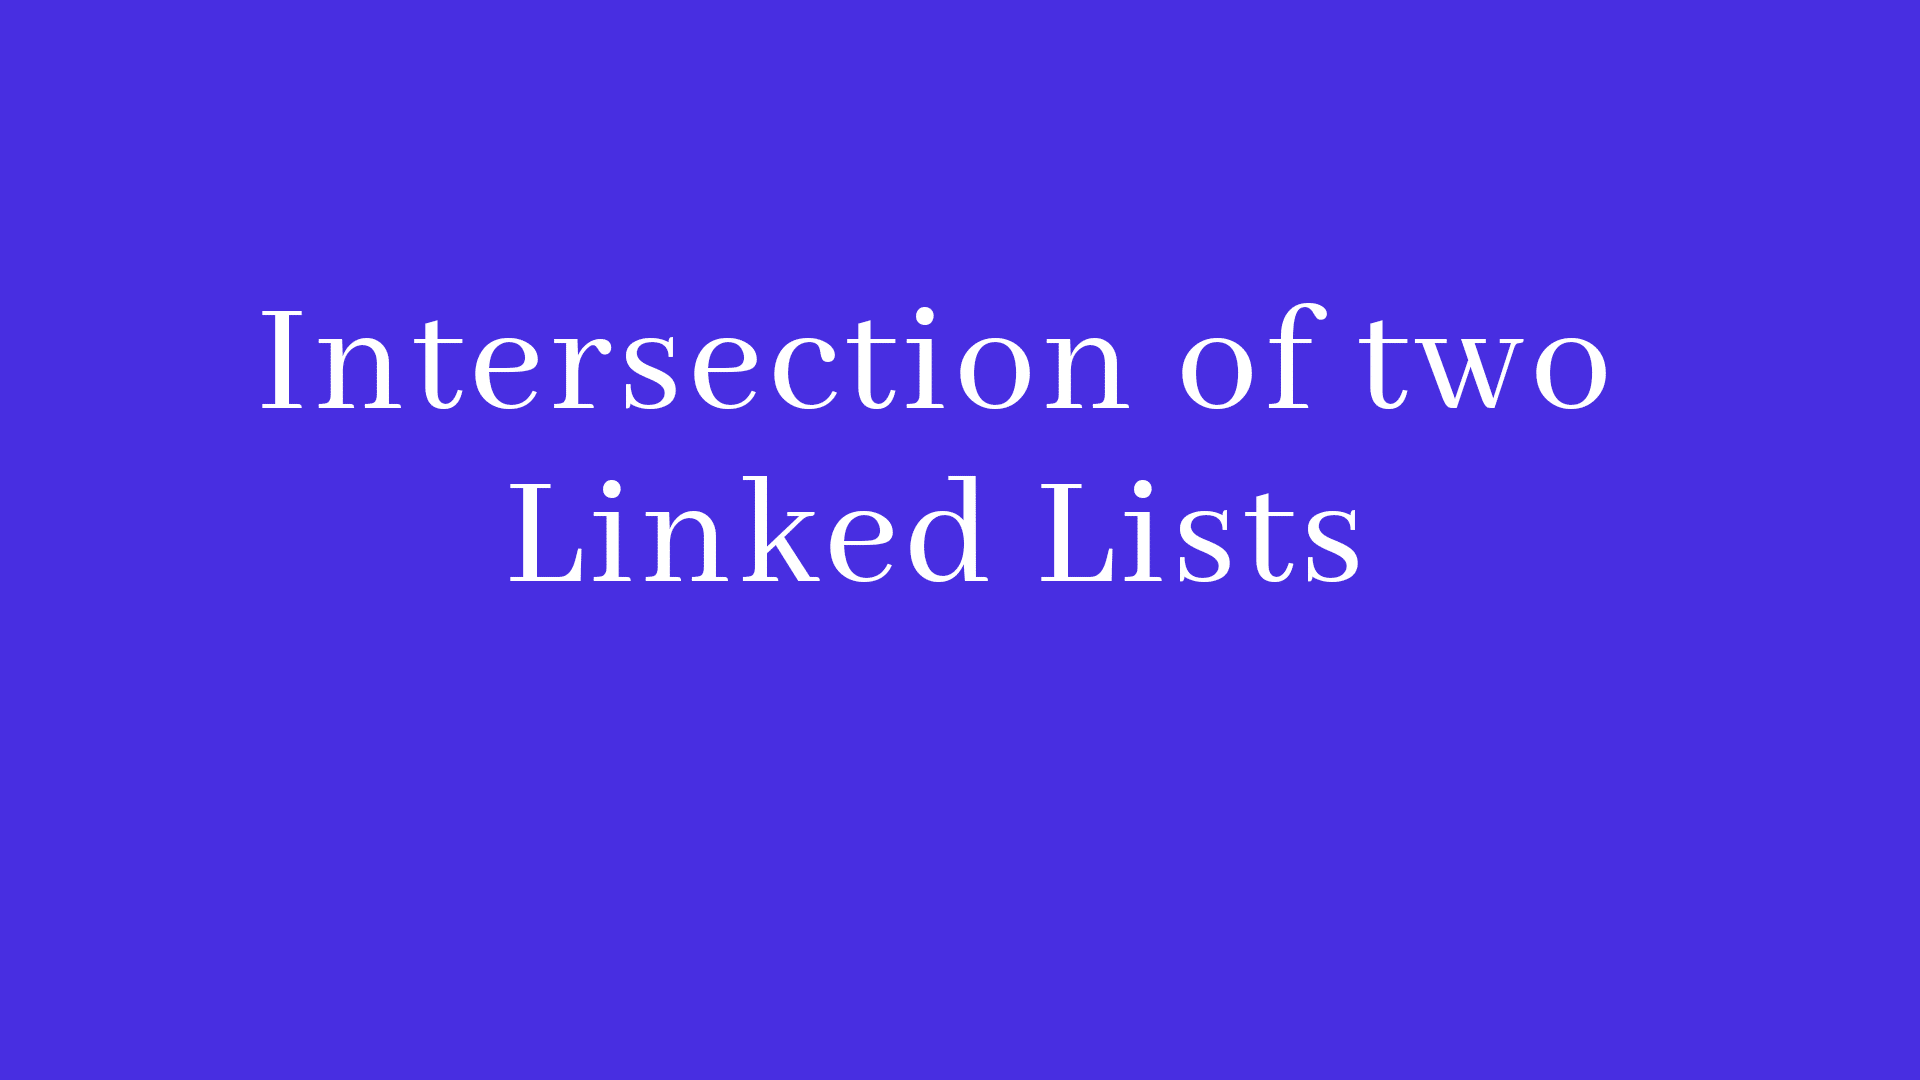 Intersection of two linked lists in Java